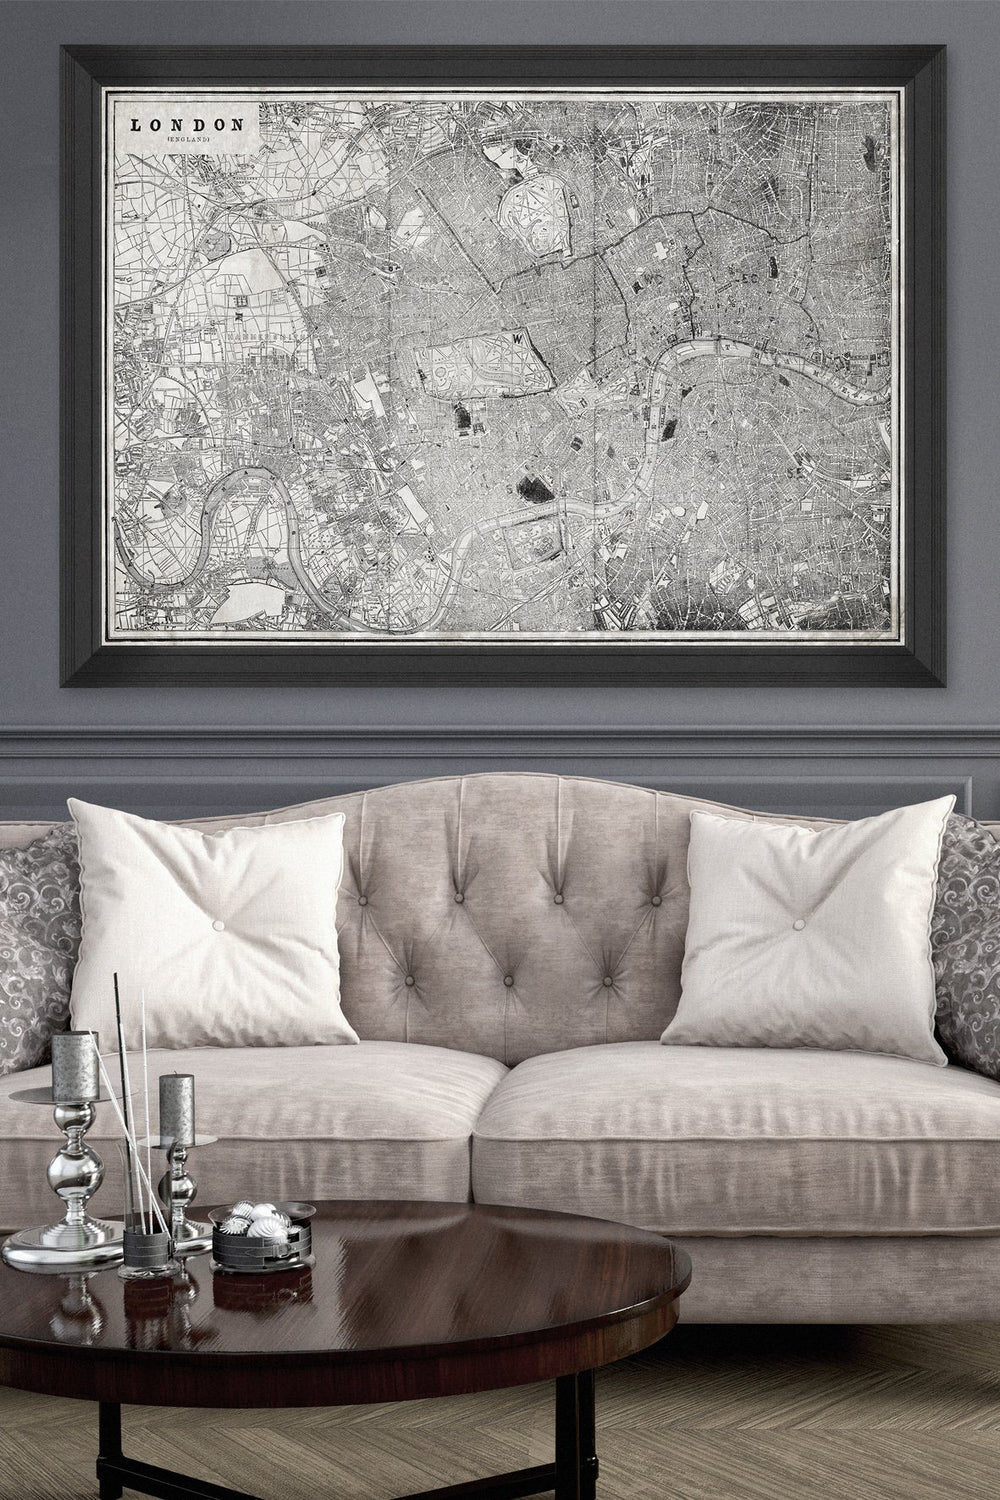 Wall Art - London Map